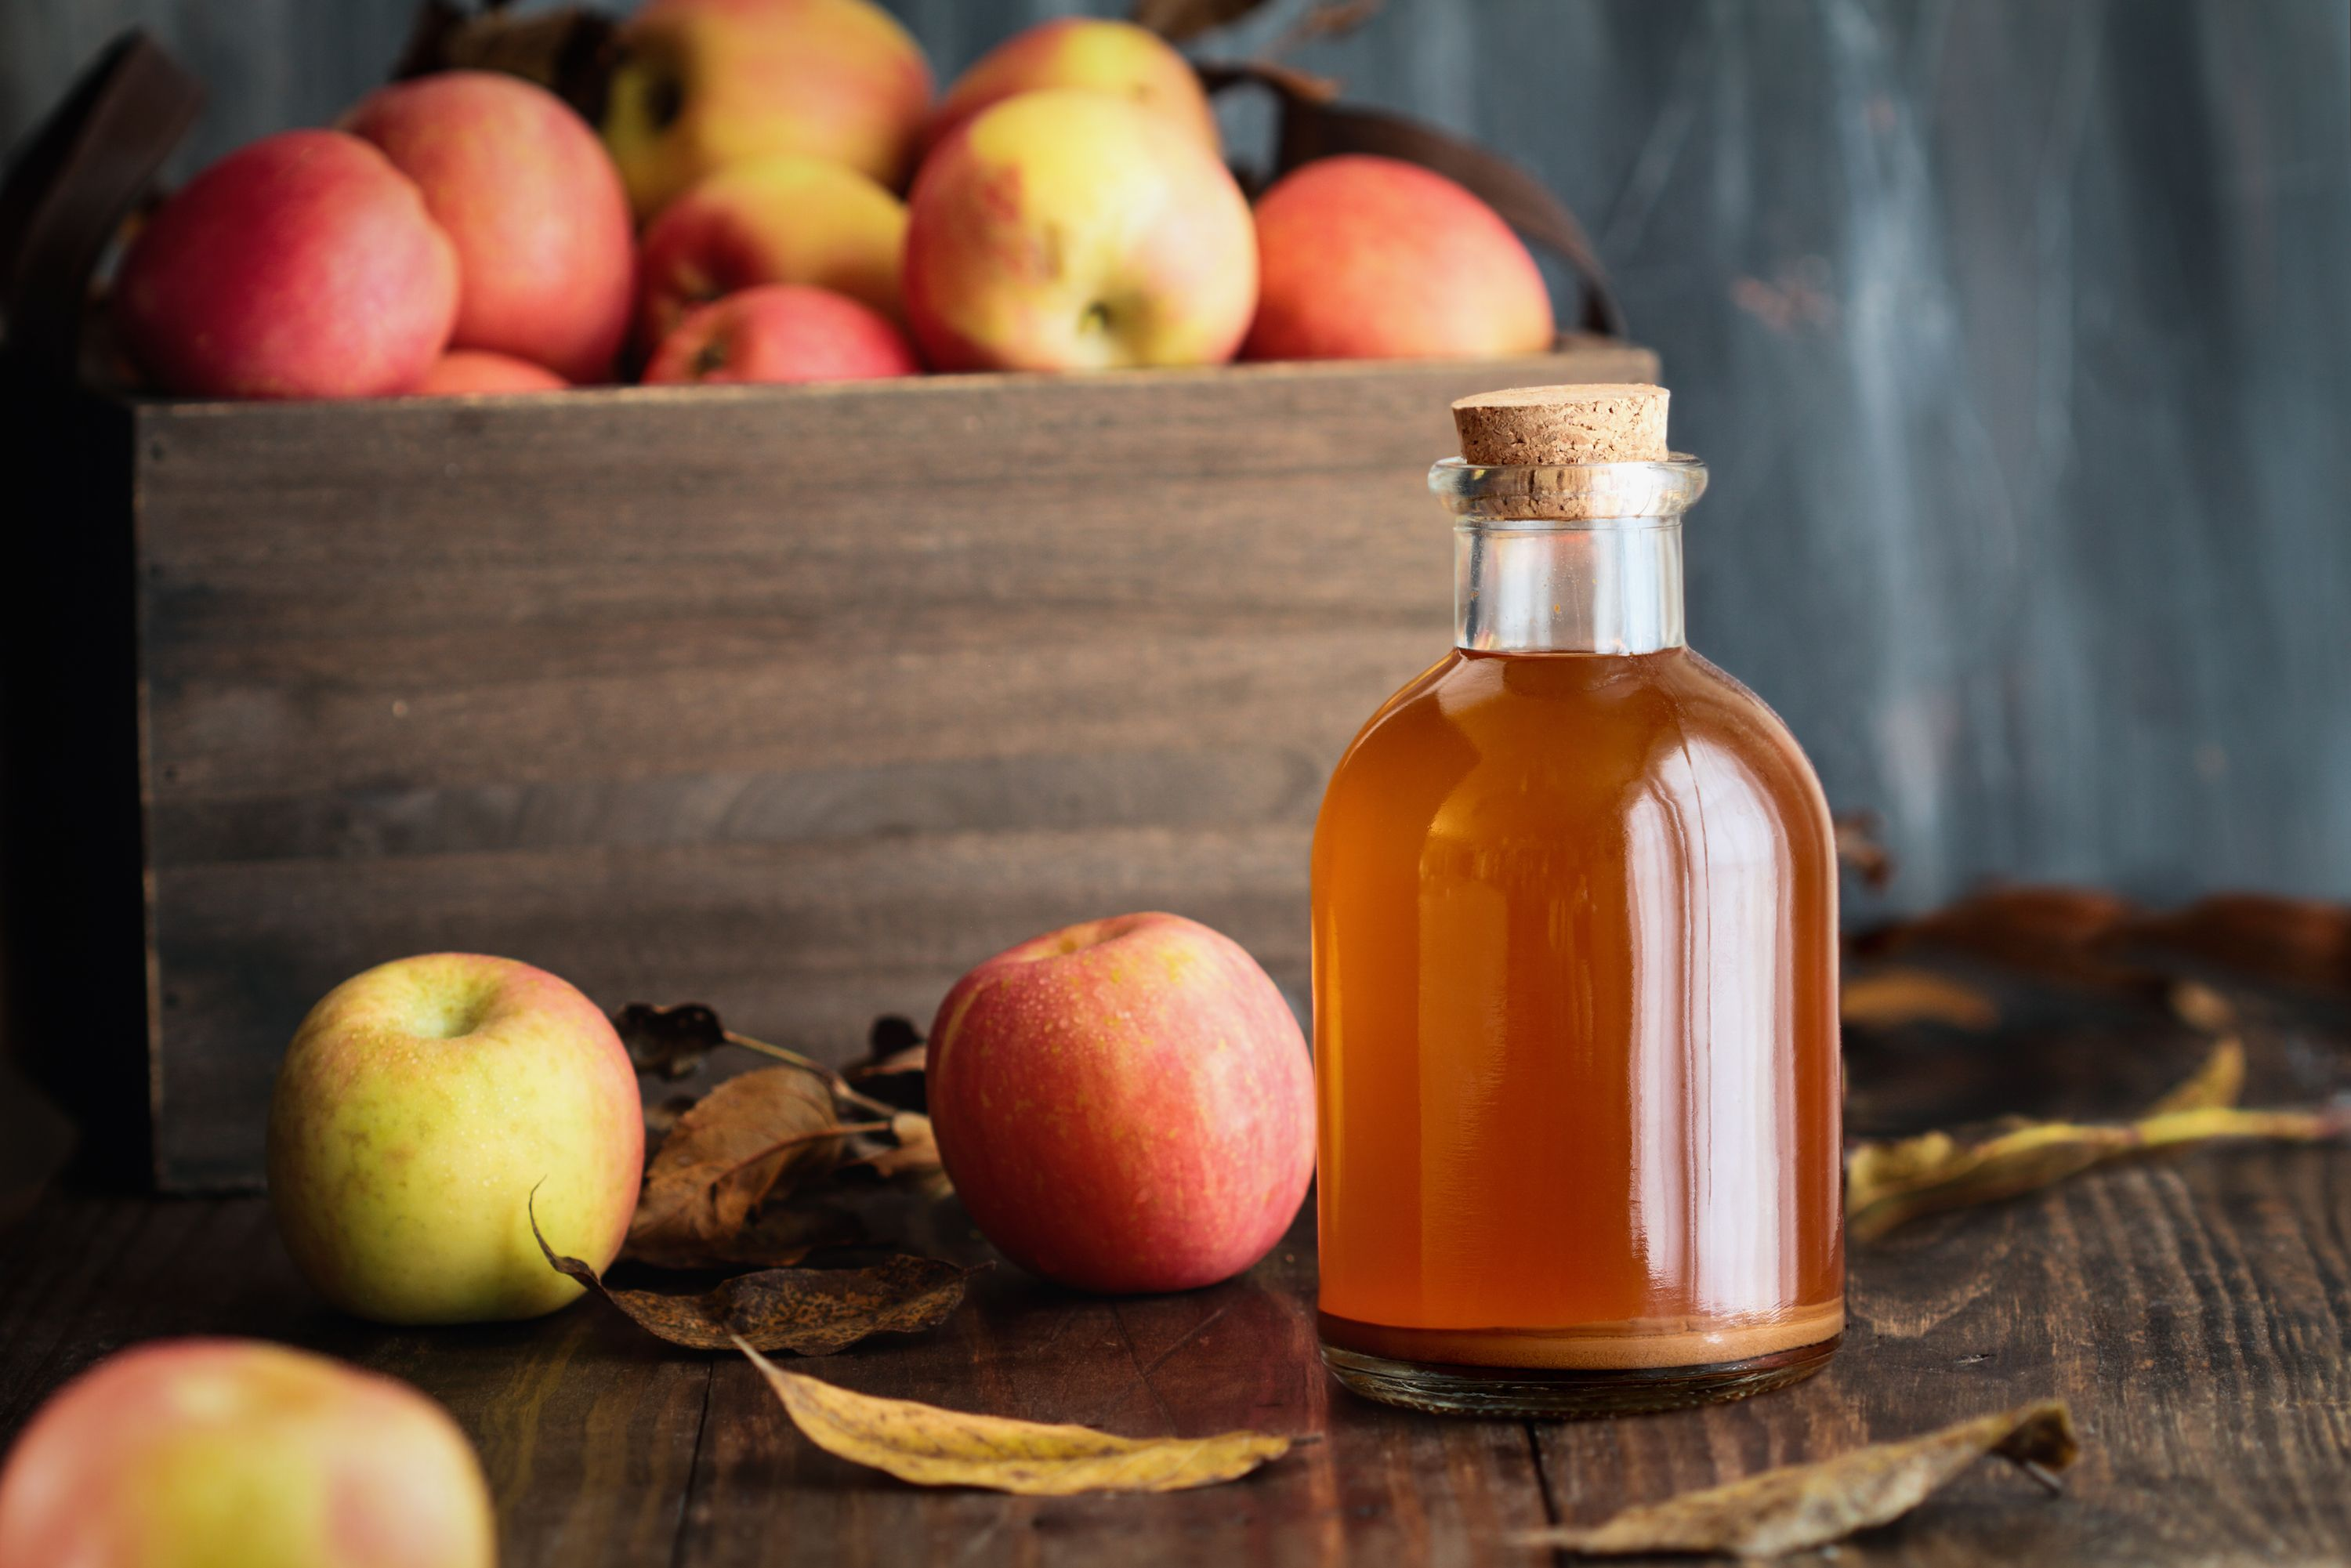 Apple cider vinegar: 8 benefits to know about